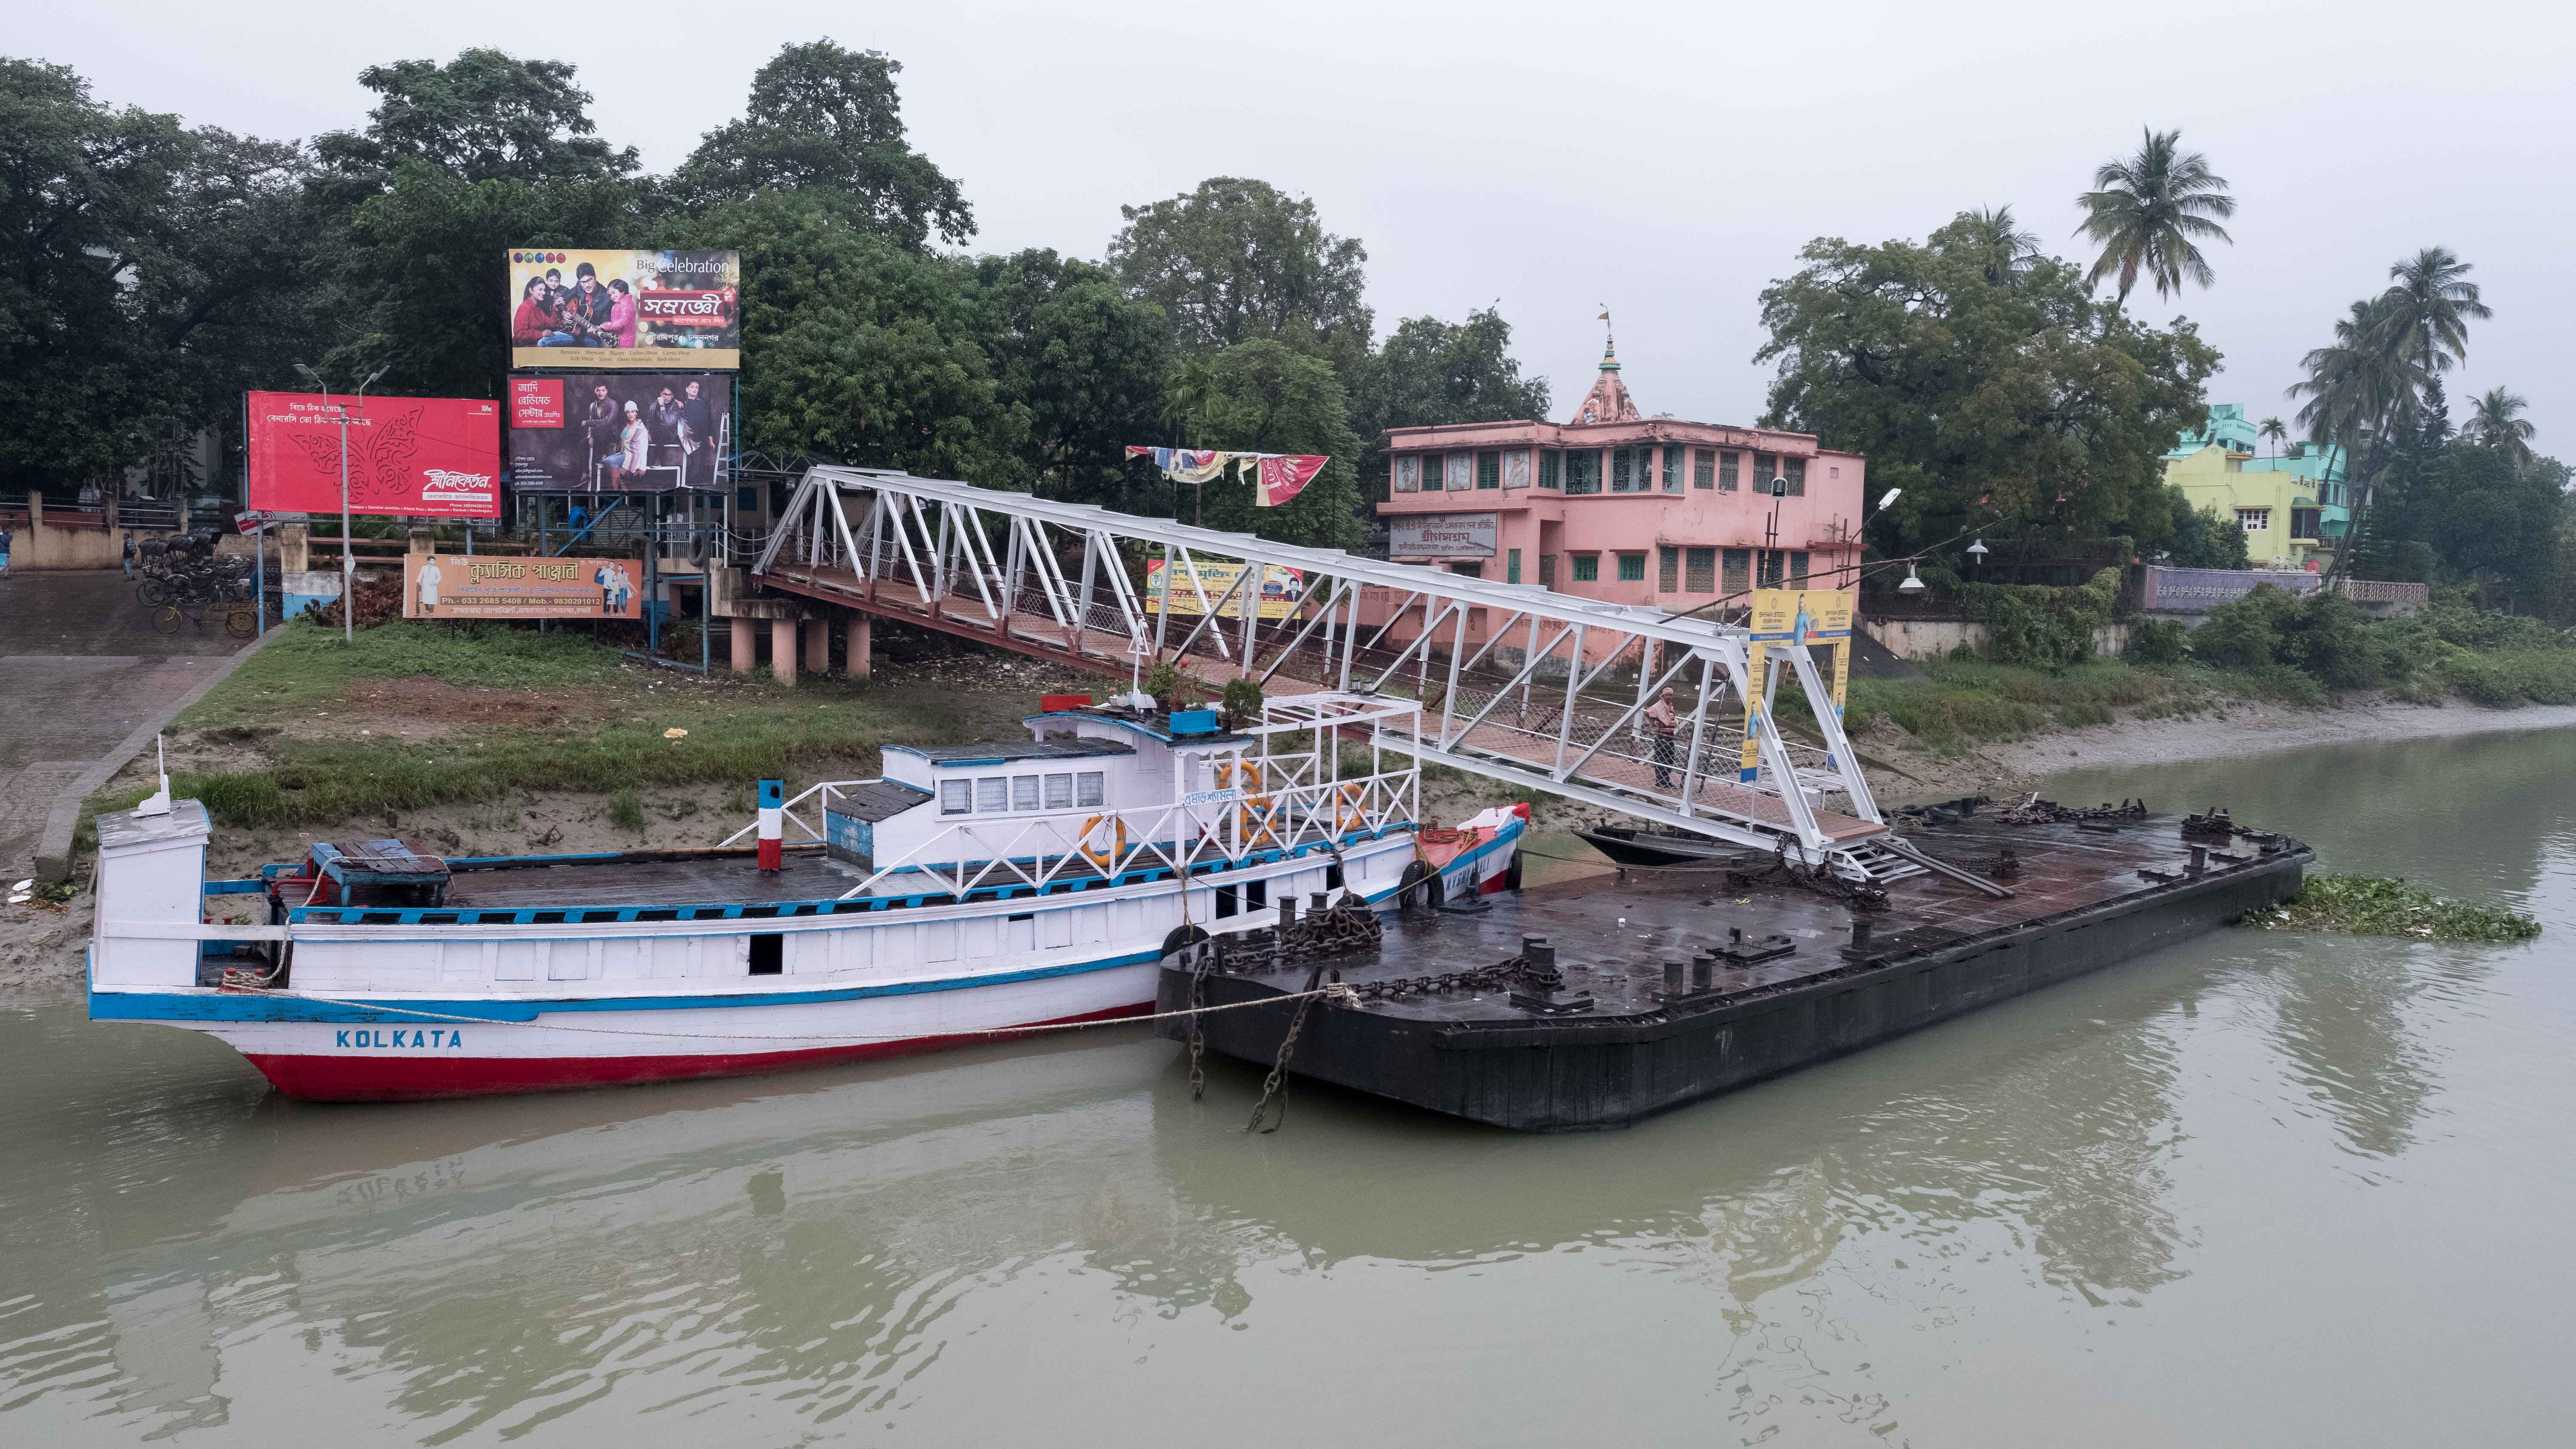 Day 5 Silk River - Chandernagore